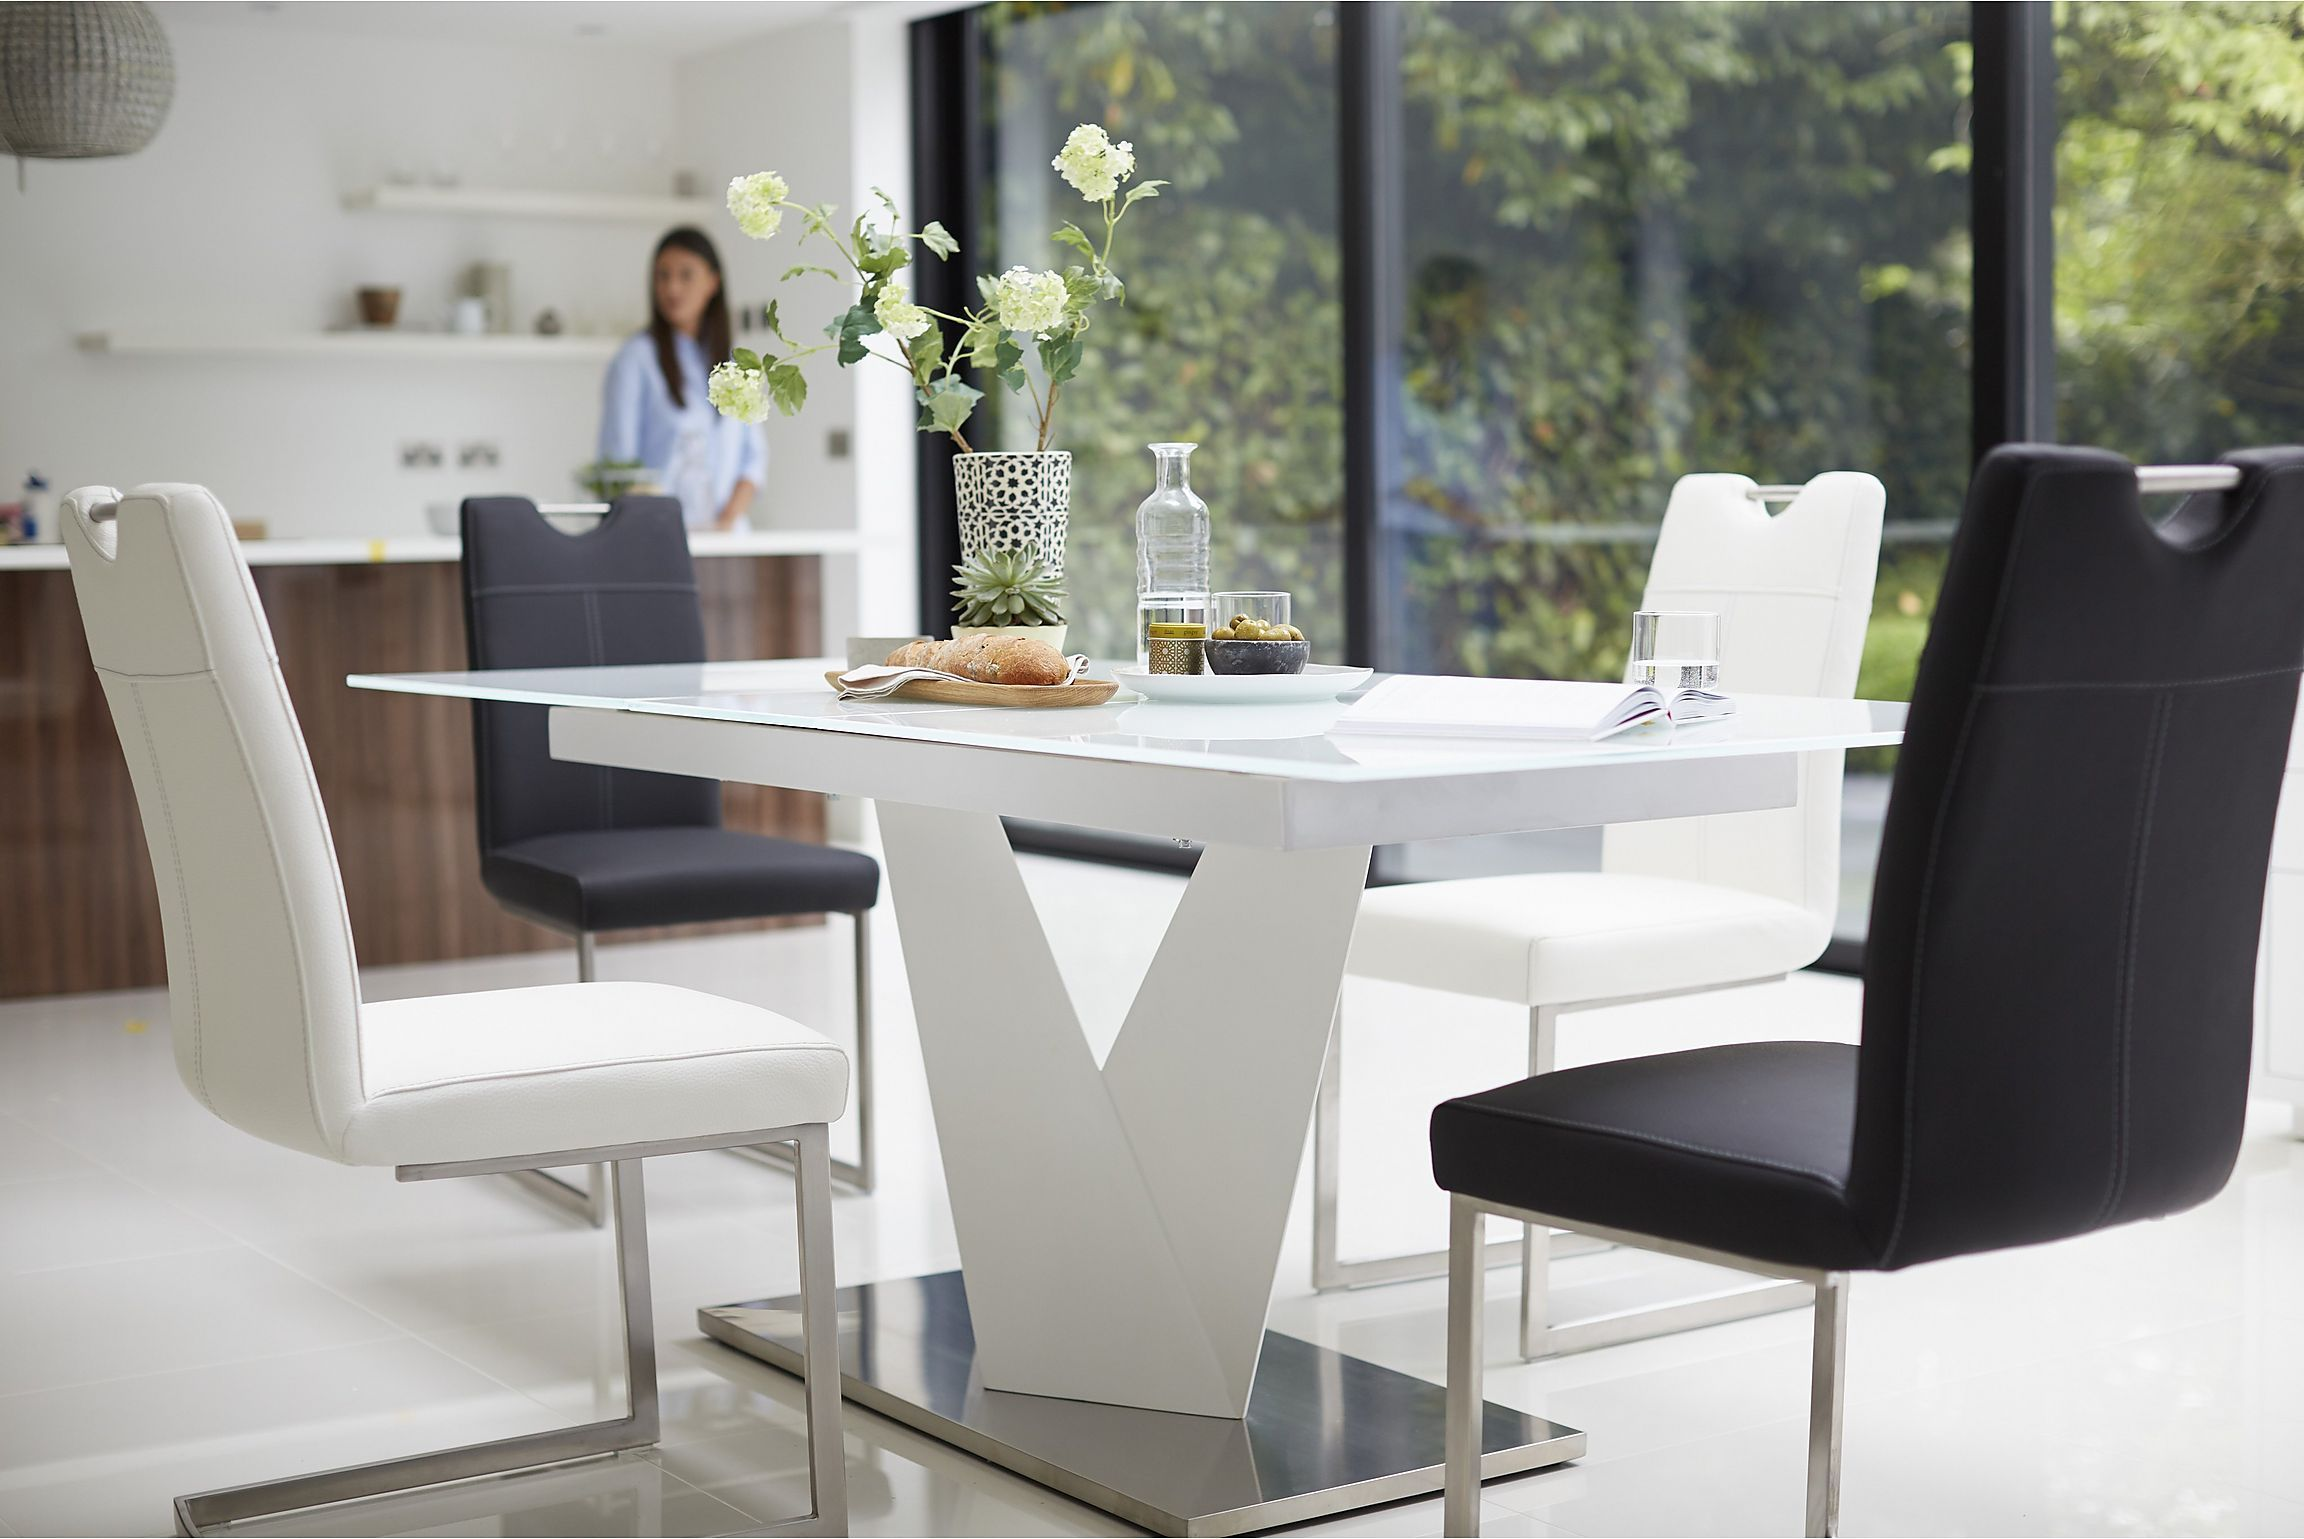 Extending Ultra Modern Dining Table From Habufa Sits Up To 8 Glass